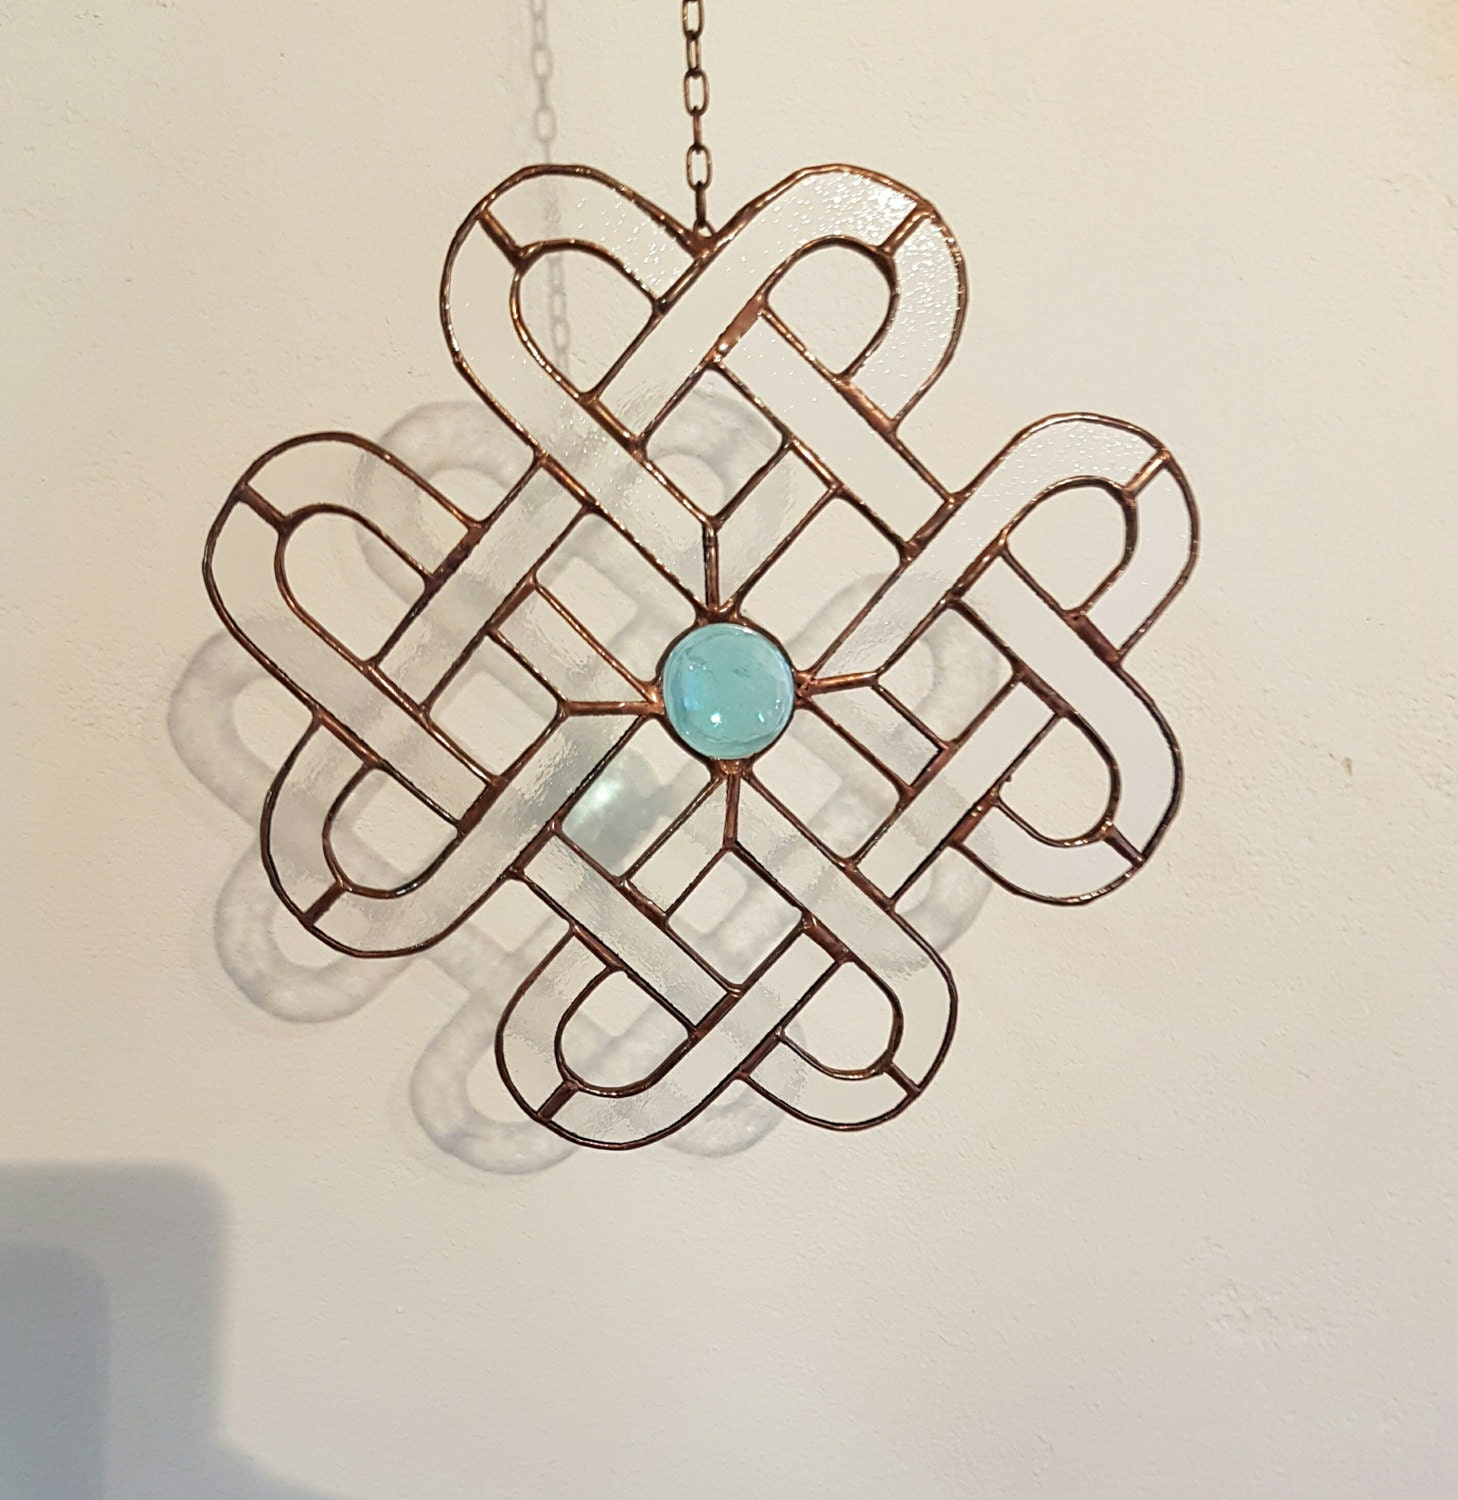 Tiffany stained glass suncatcher hearts celtic knotwork in zoom biocorpaavc Gallery